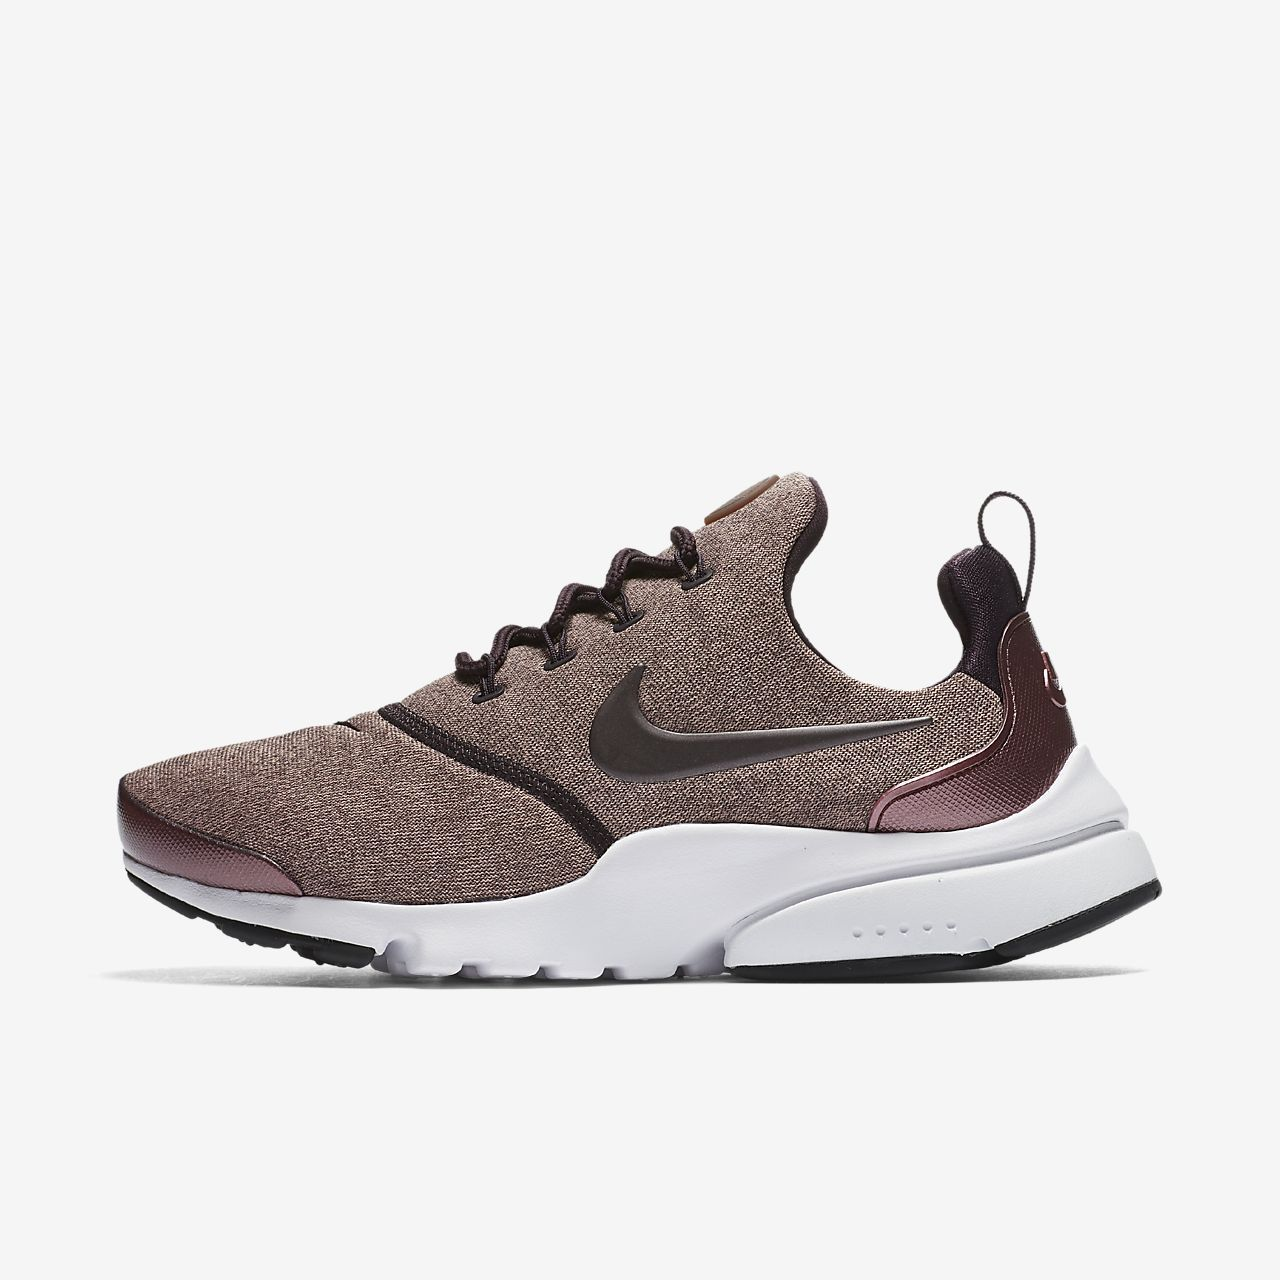 nice shoes excellent quality best choice Chaussure Nike Presto Fly SE pour Femme | ++SHOES++ | Nike ...